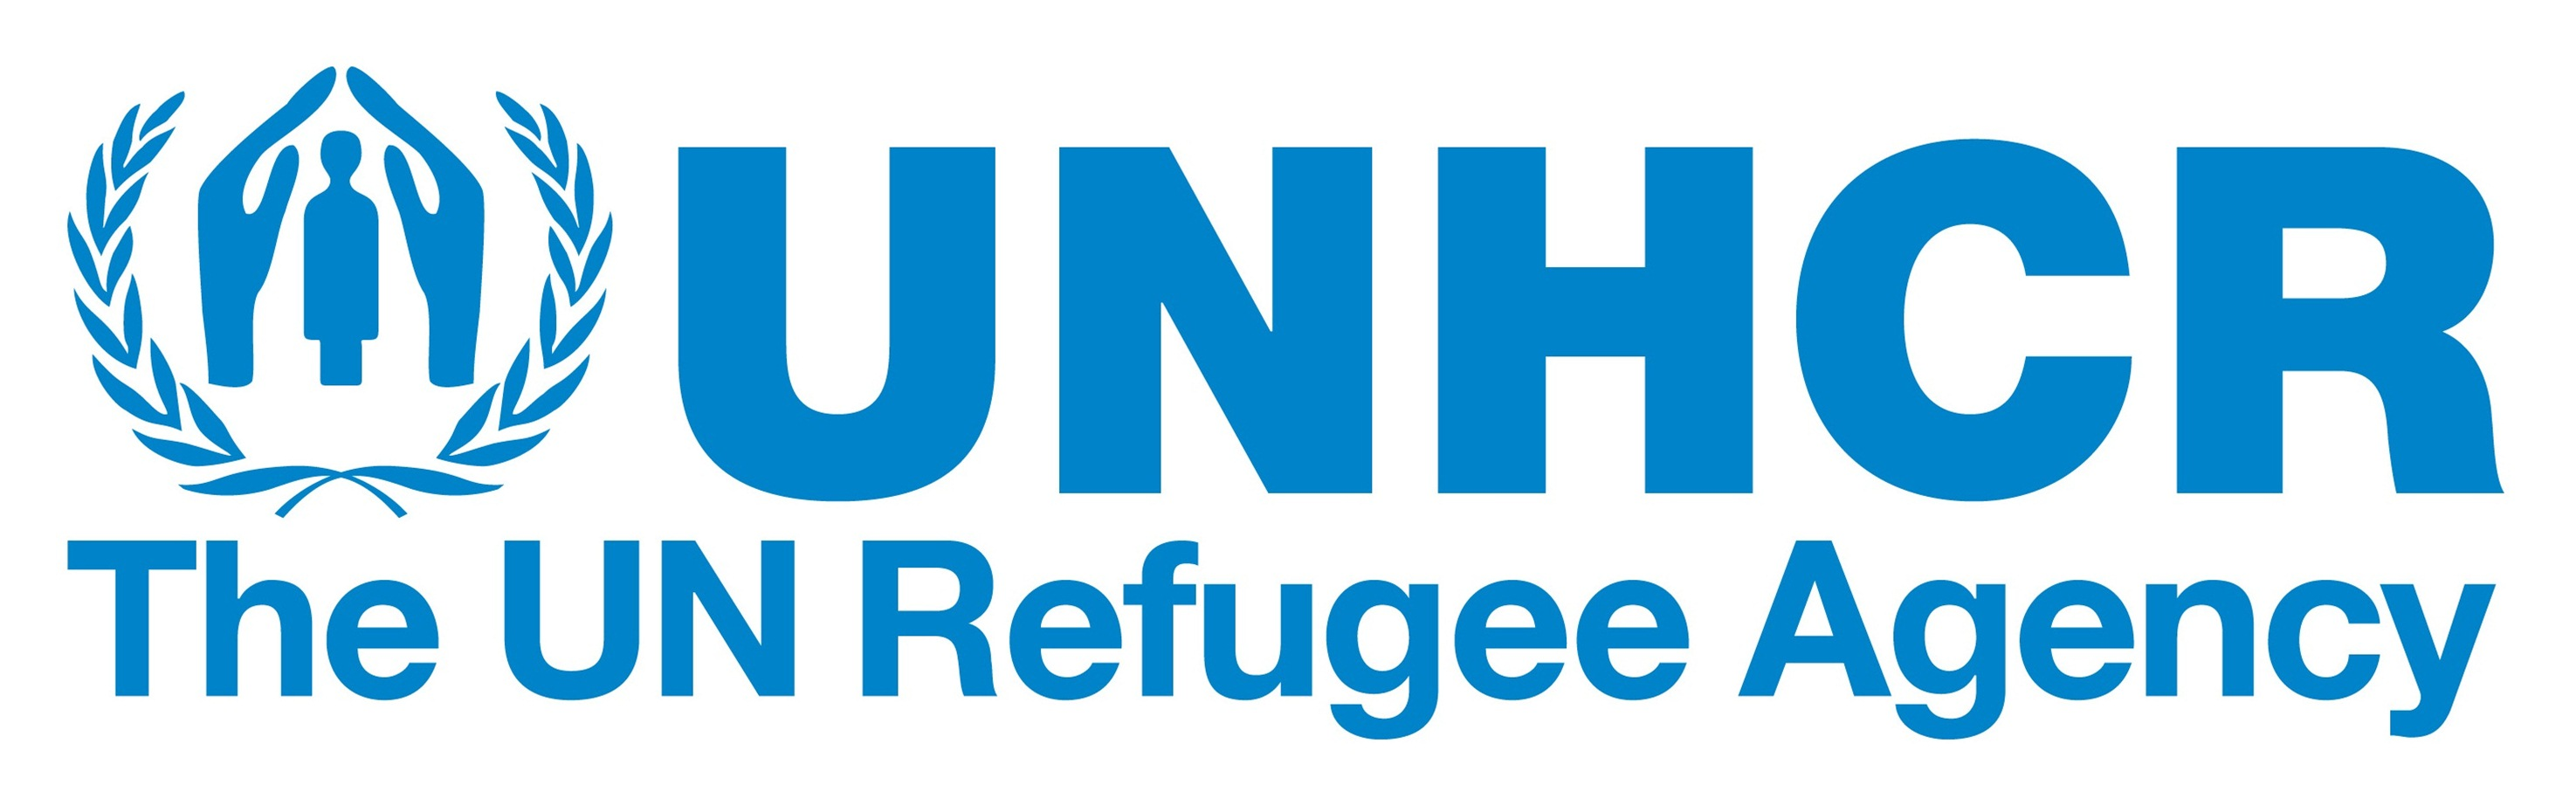 Office of the United Nations High Commissioner for Refugees Cleaning and Consumable Services